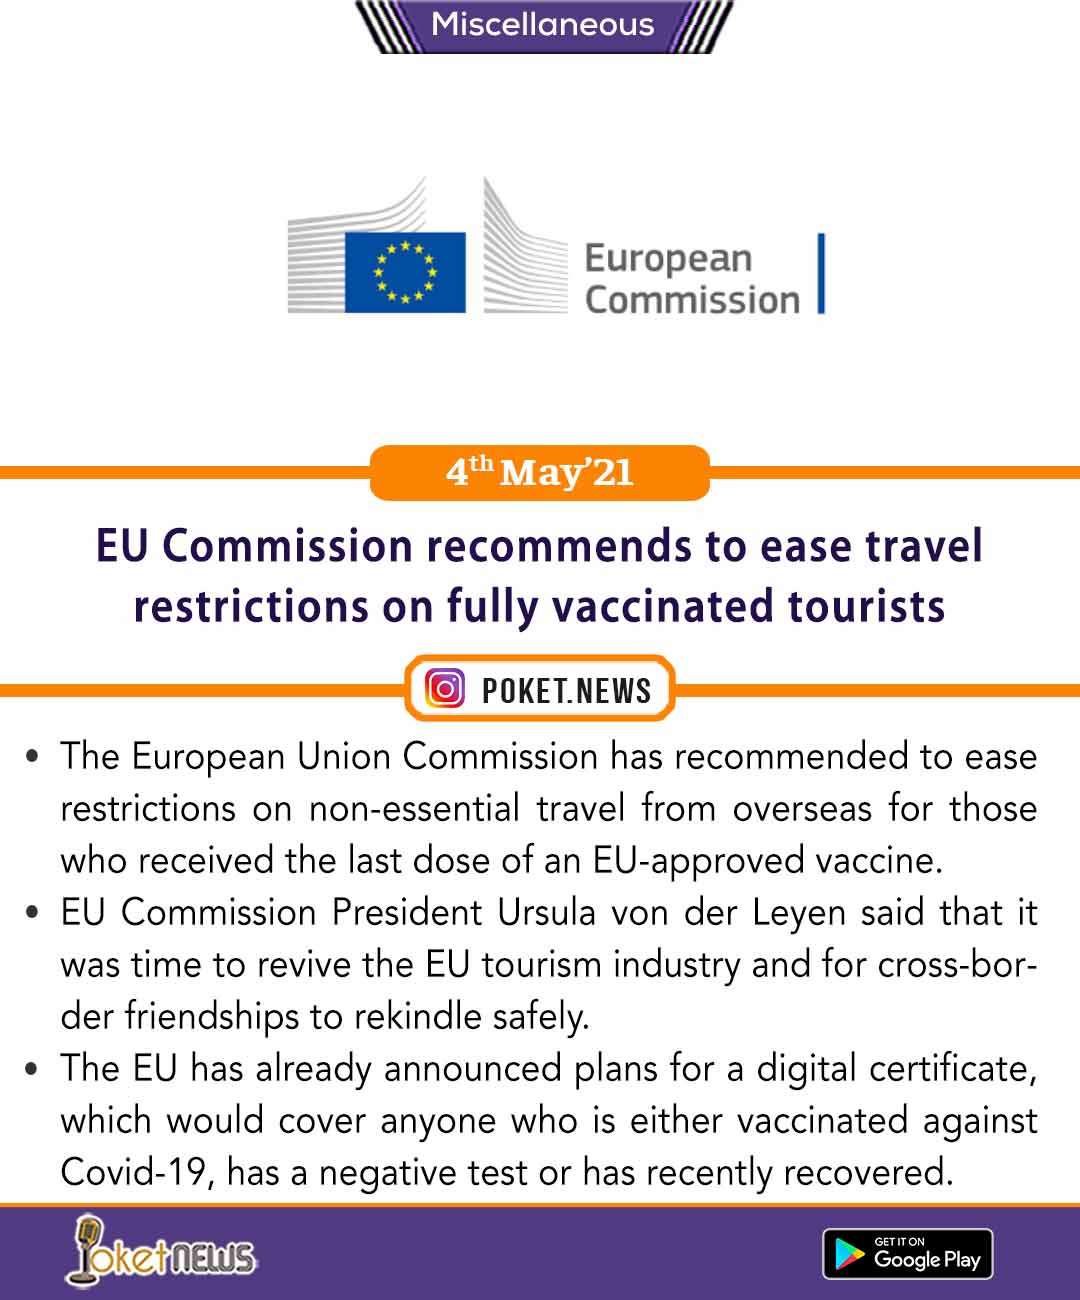 EU Commission recommends to ease travel restrictions on fully vaccinated tourists